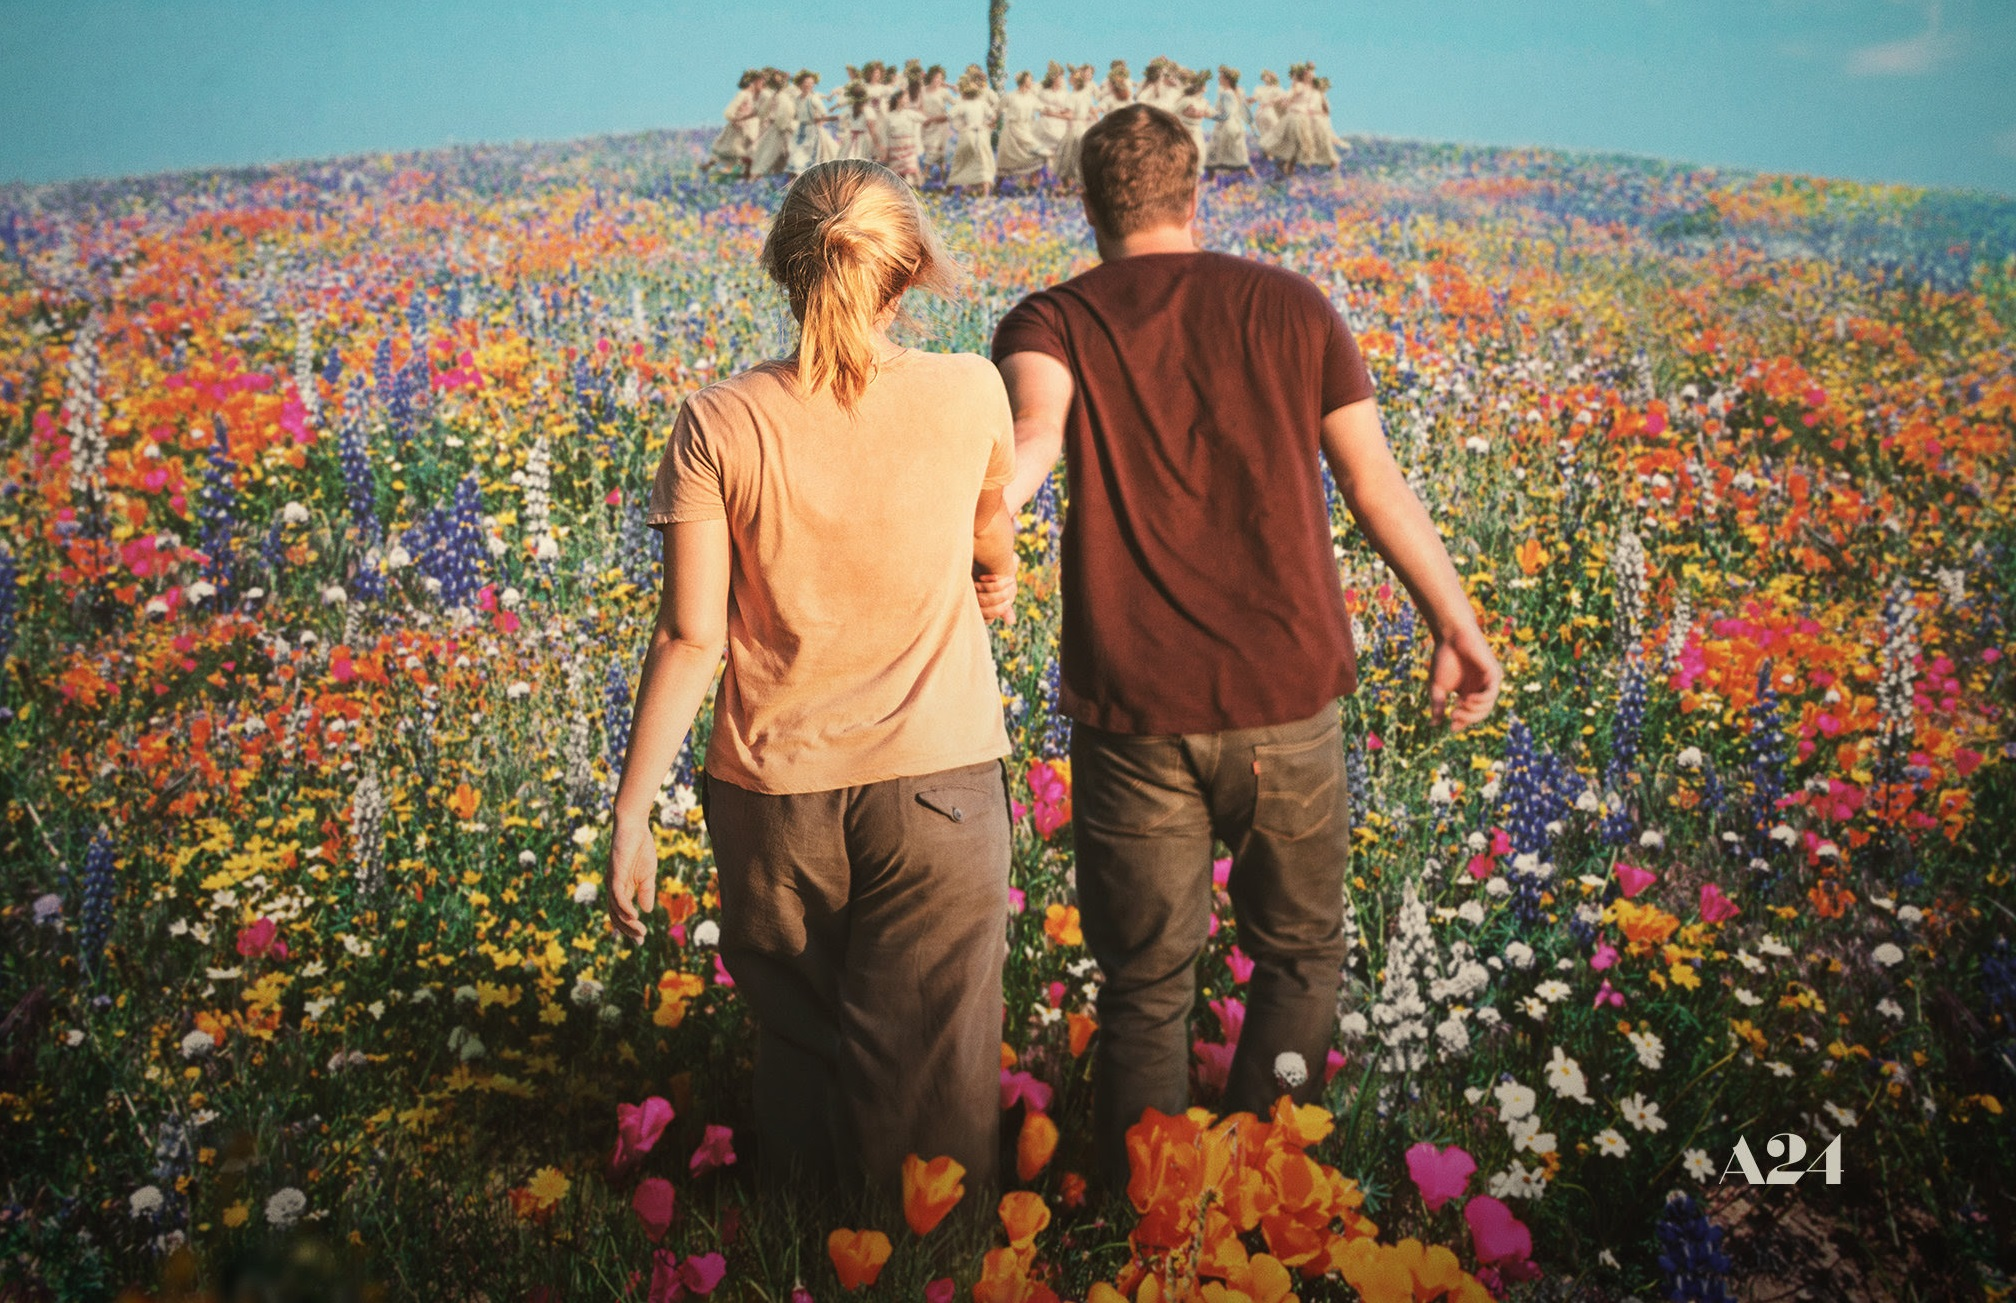 [Trailer] MIDSOMMAR Embraces the Heathen in Us All!